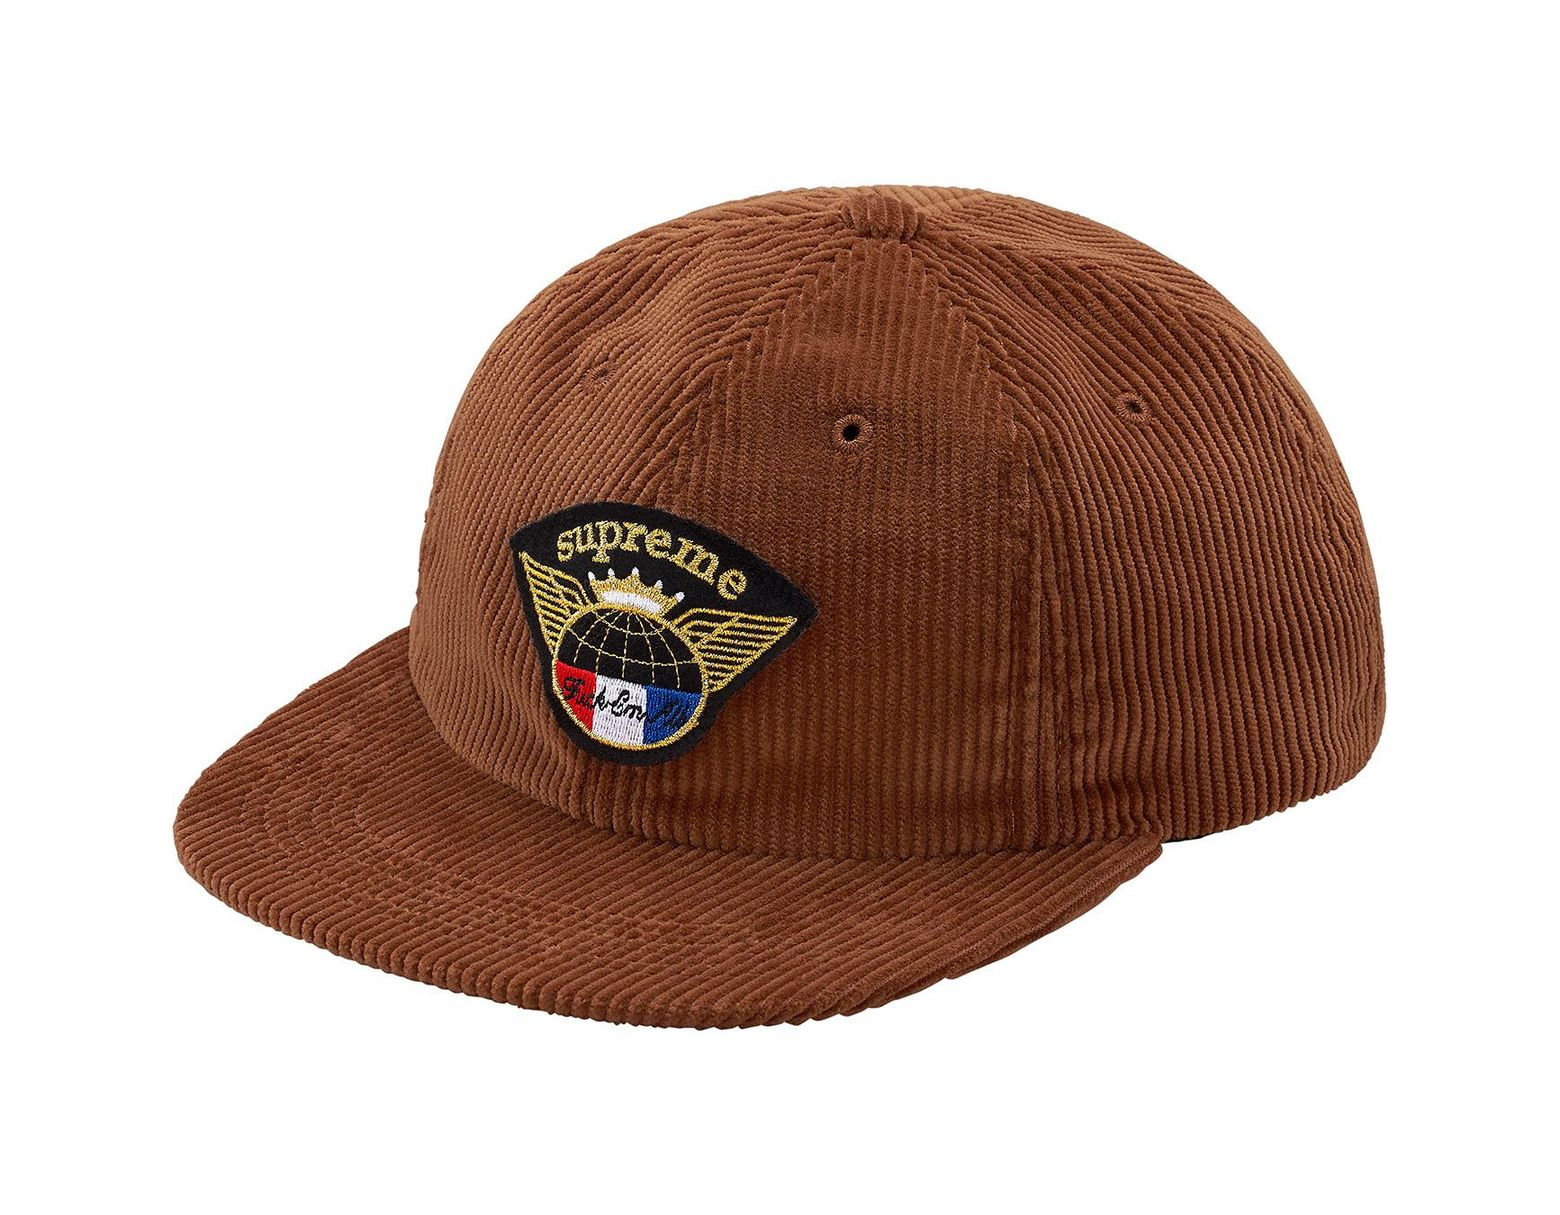 a7d93112 Supreme Global Corduroy 6-panel Brown in Brown for Men - Lyst